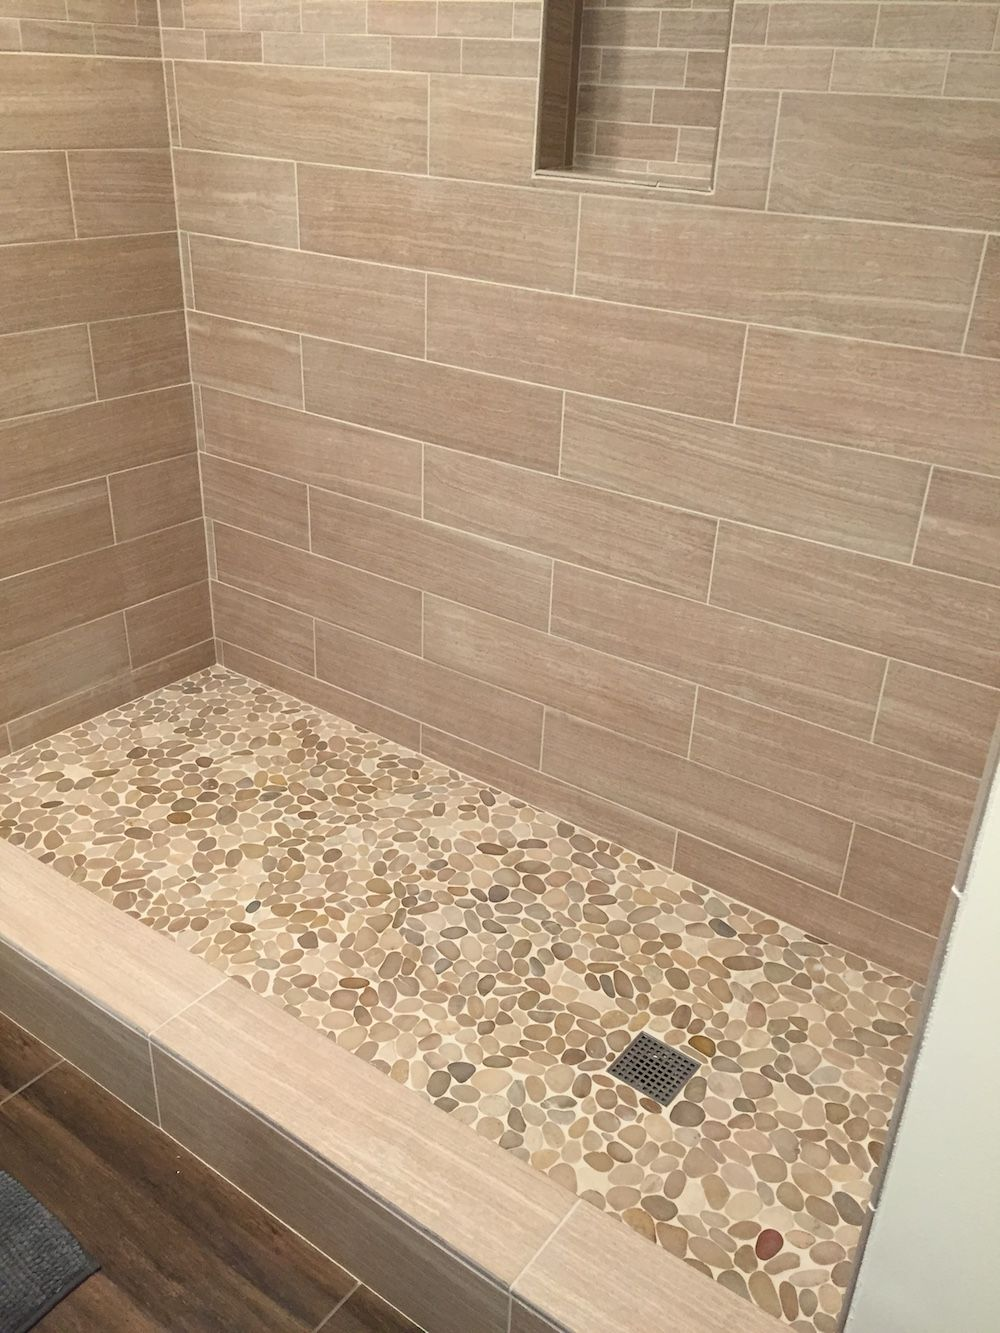 2017 cost to tile a shower how much to tile a shower basement 2017 cost to tile a shower how much to tile a shower doublecrazyfo Image collections